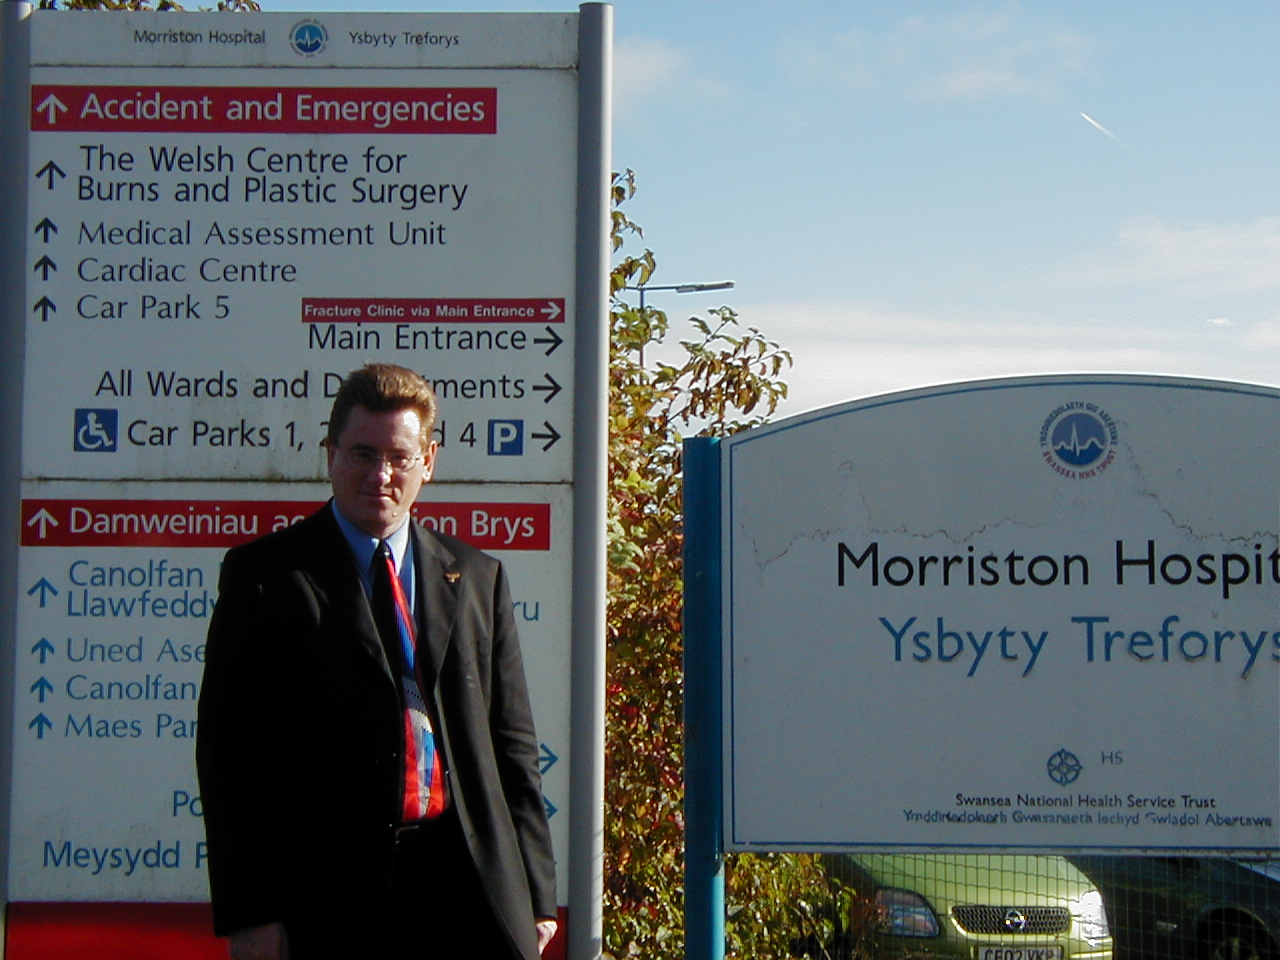 Assembly Member welcomes investment in new operating theatres Morriston Hospital